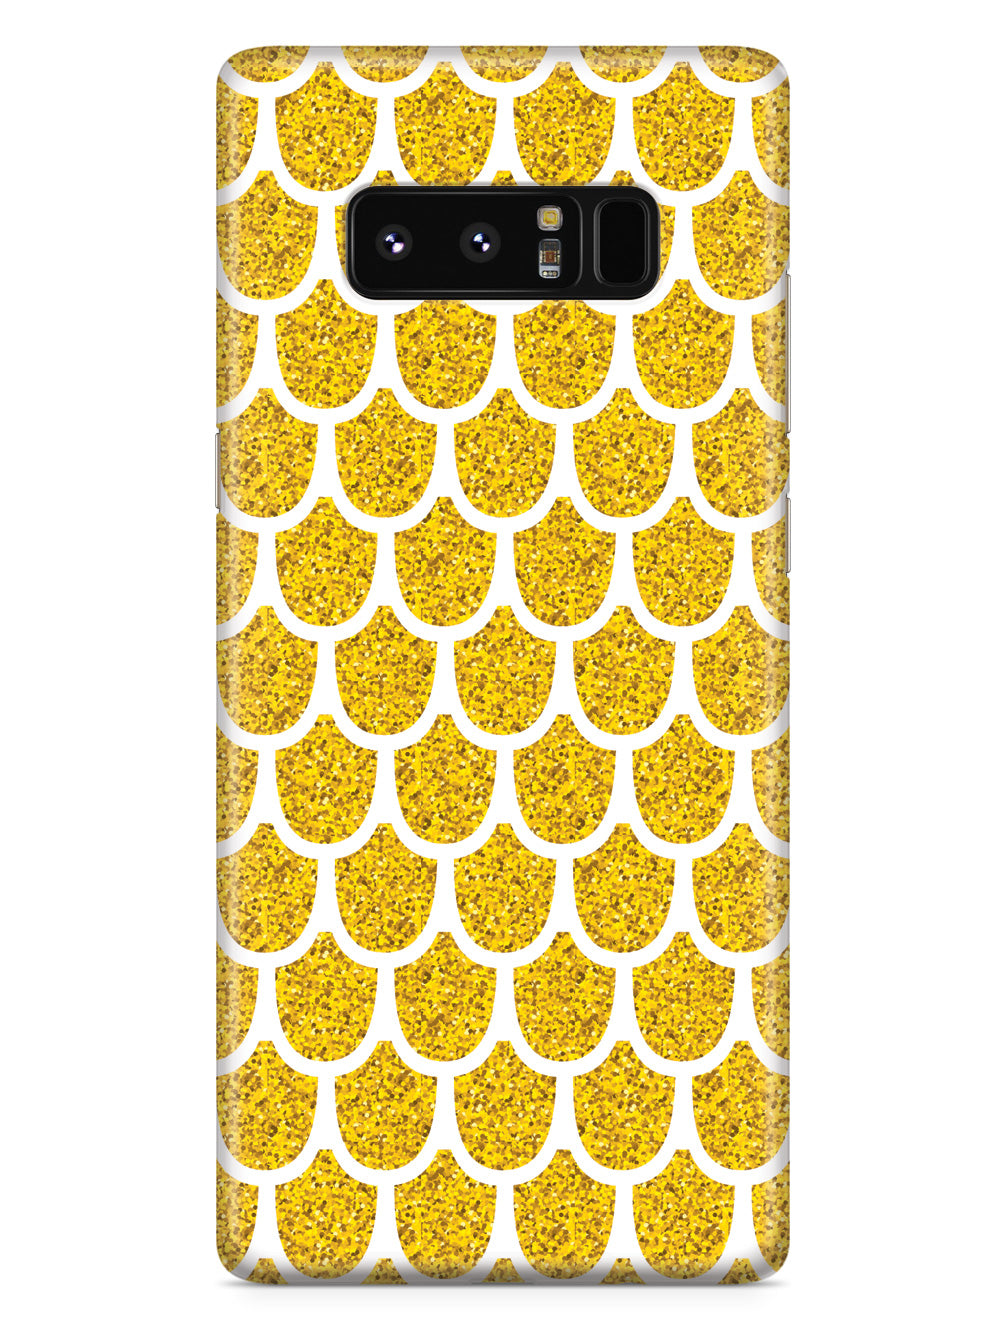 Mermaid Scales - Gold - White Case